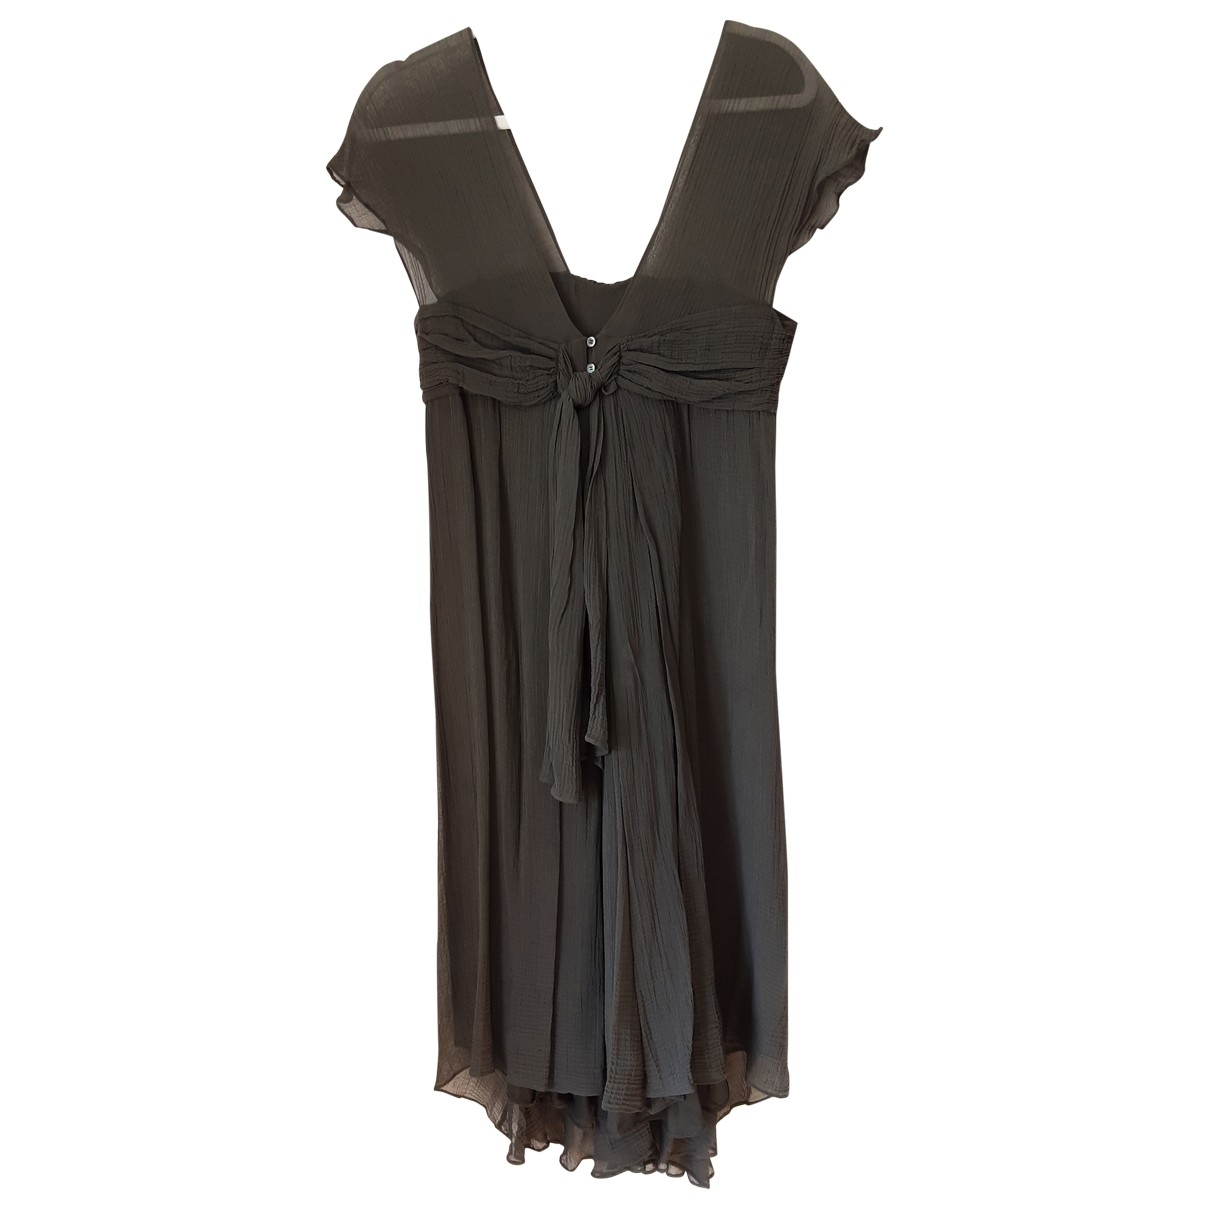 Nicole Farhi \N Grey Silk dress for Women 10 UK